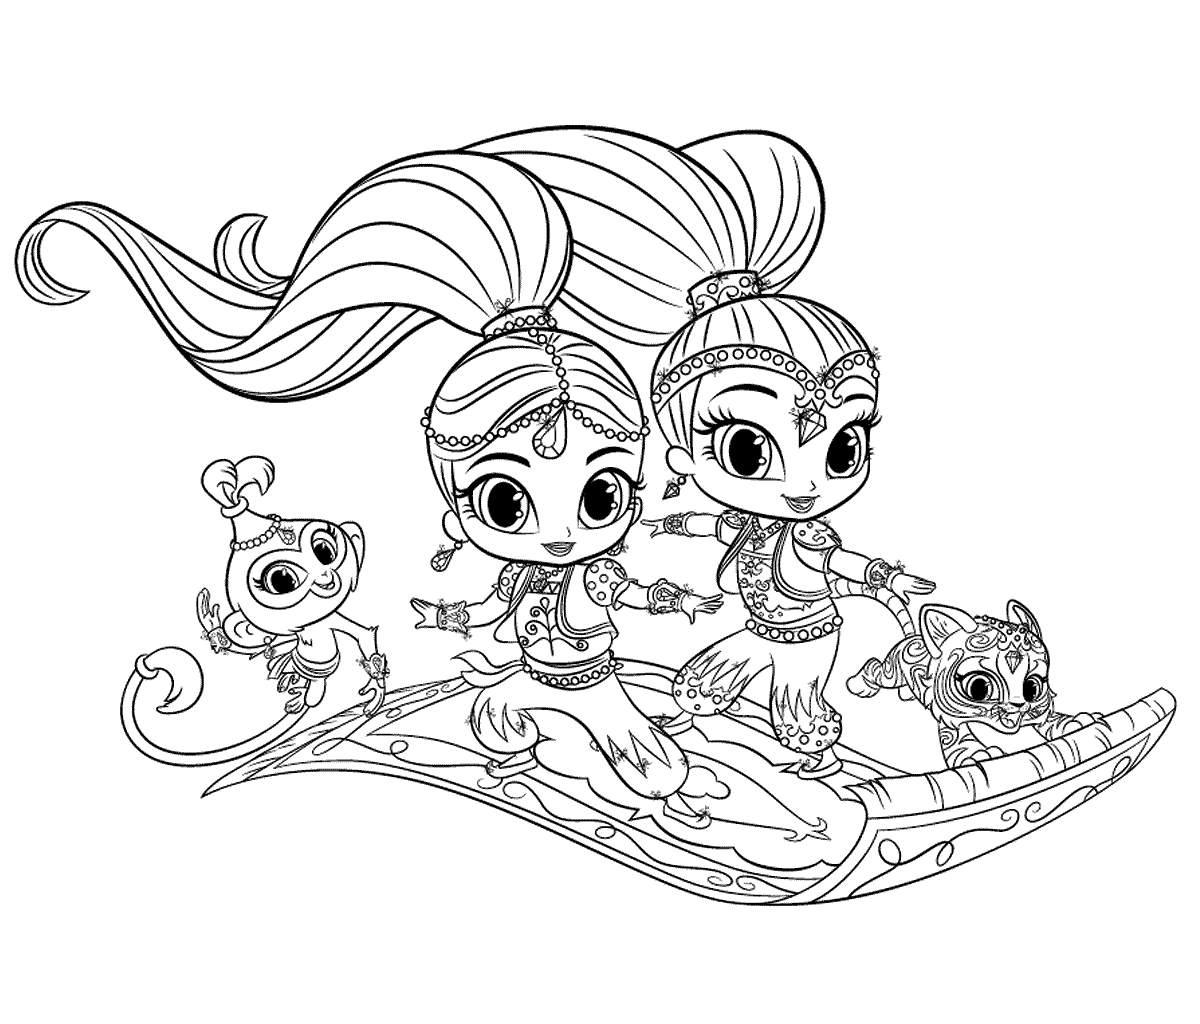 1200x1024 Shimmer And Shine On Magic Carpet Coloring Pages